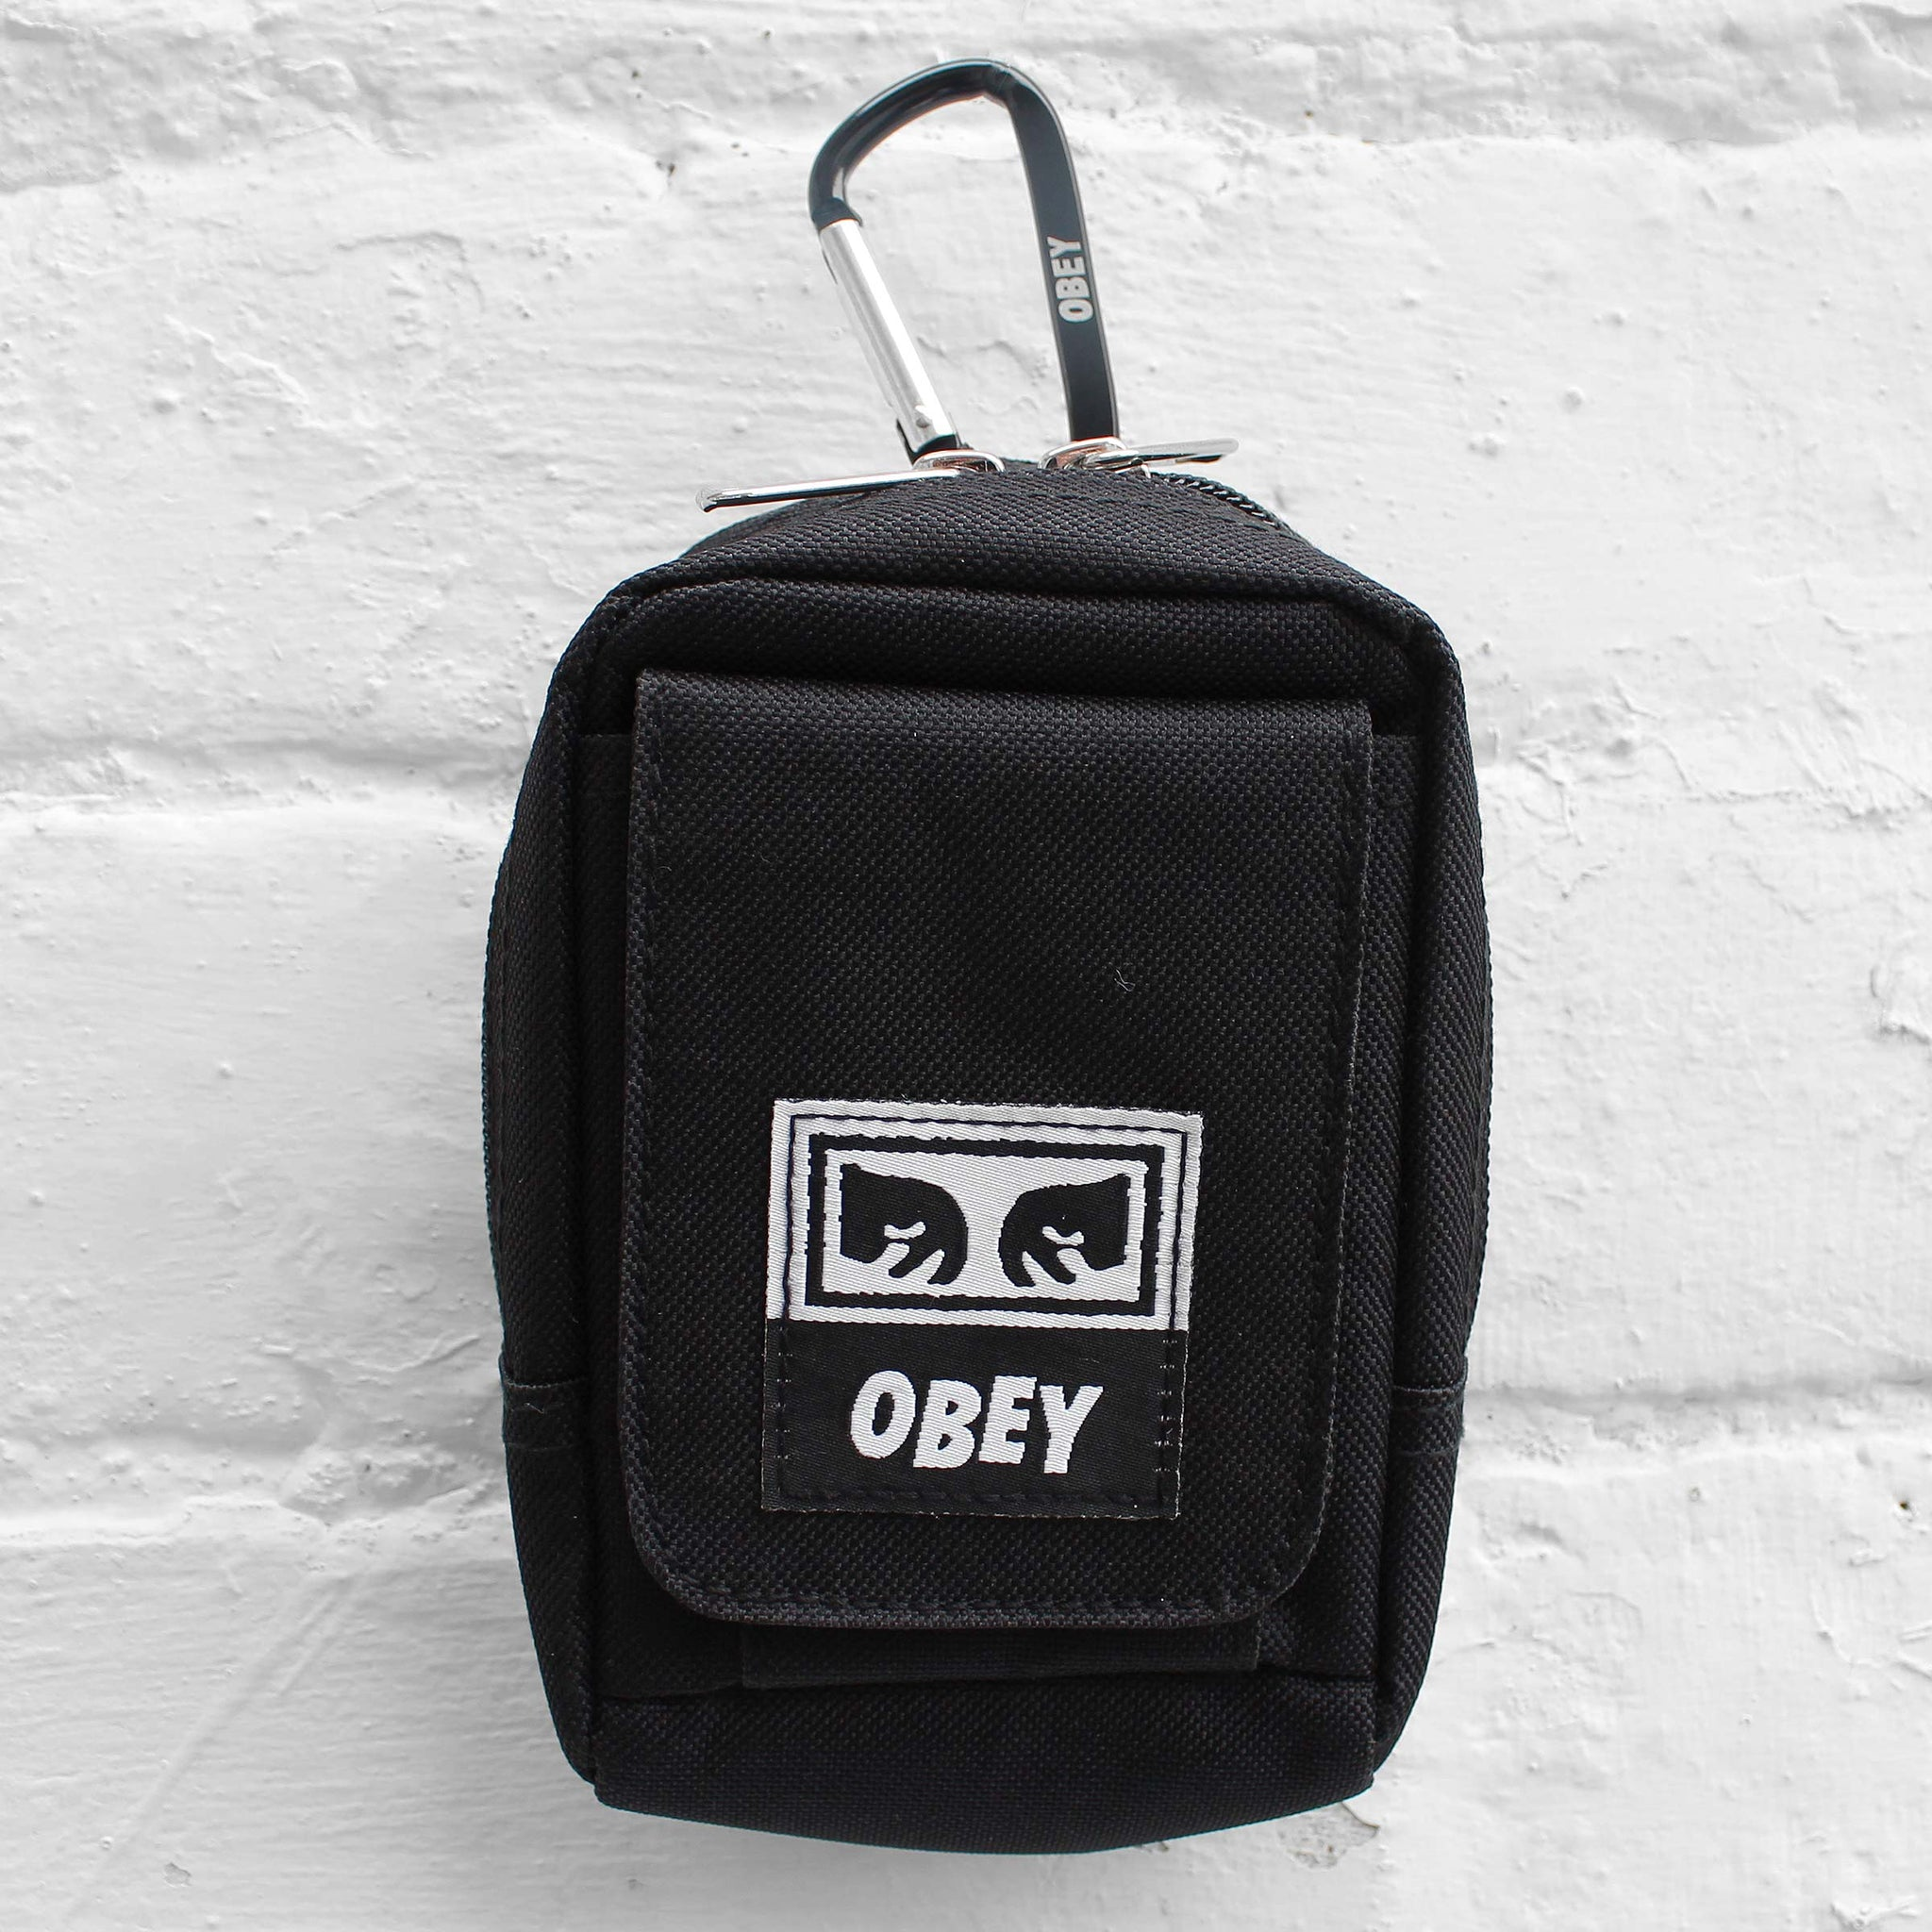 Obey Drop Out Utility Bag Bag